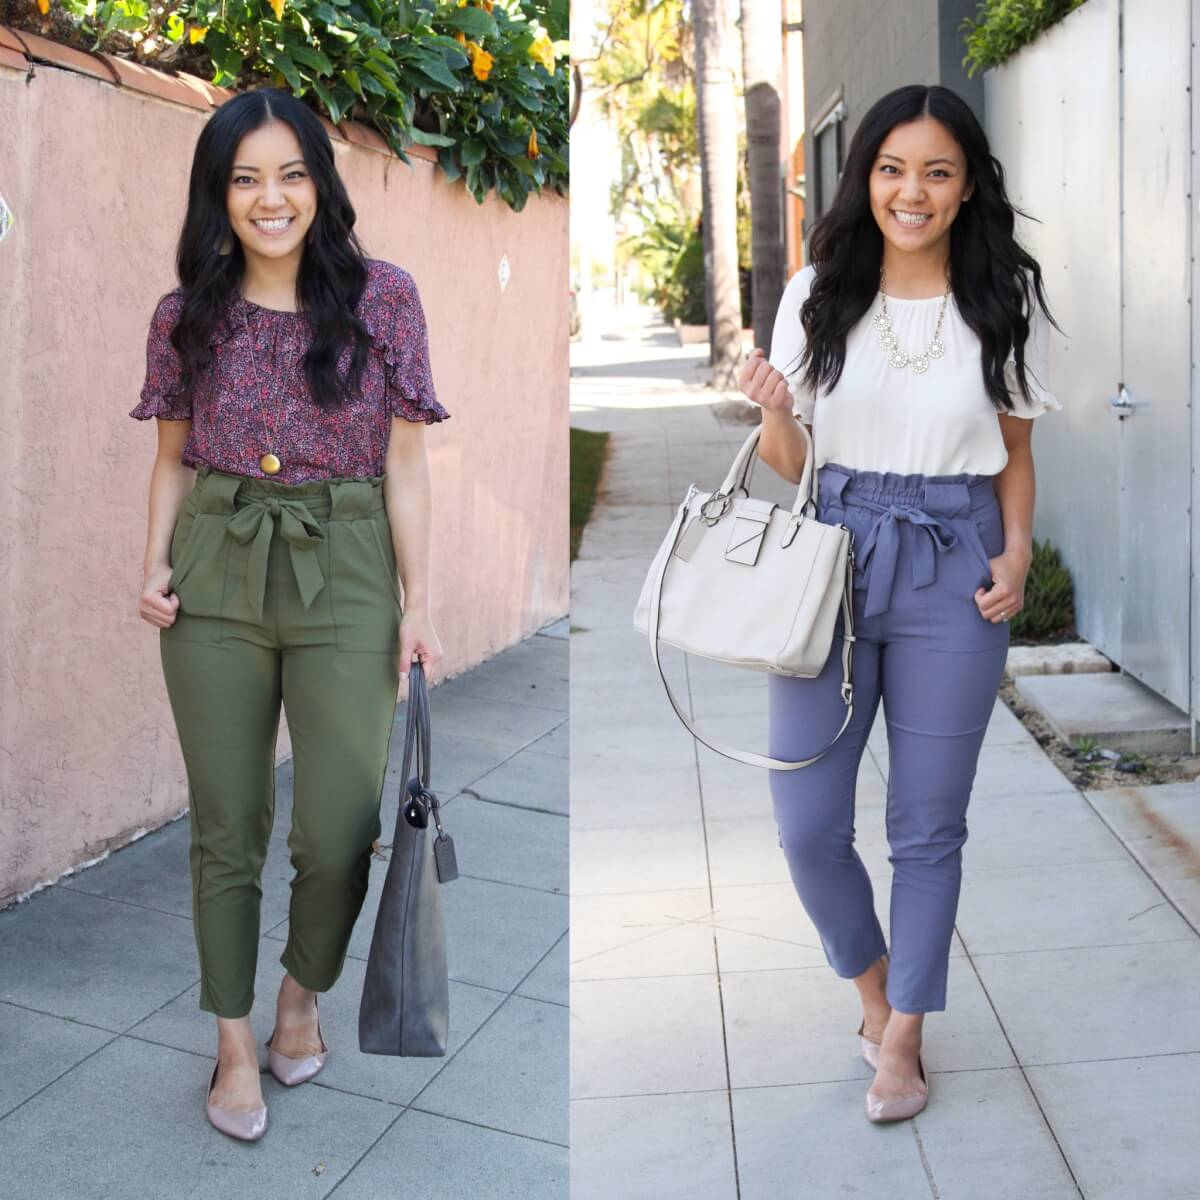 Summer Pants Work Outfit: purple floral ruffle sleeve top + olive tie waist pants + nude flats + pendant necklace + gray tote + white ruffle sleeve top + blue tie waist pants + nude flats + statement necklace + white bag